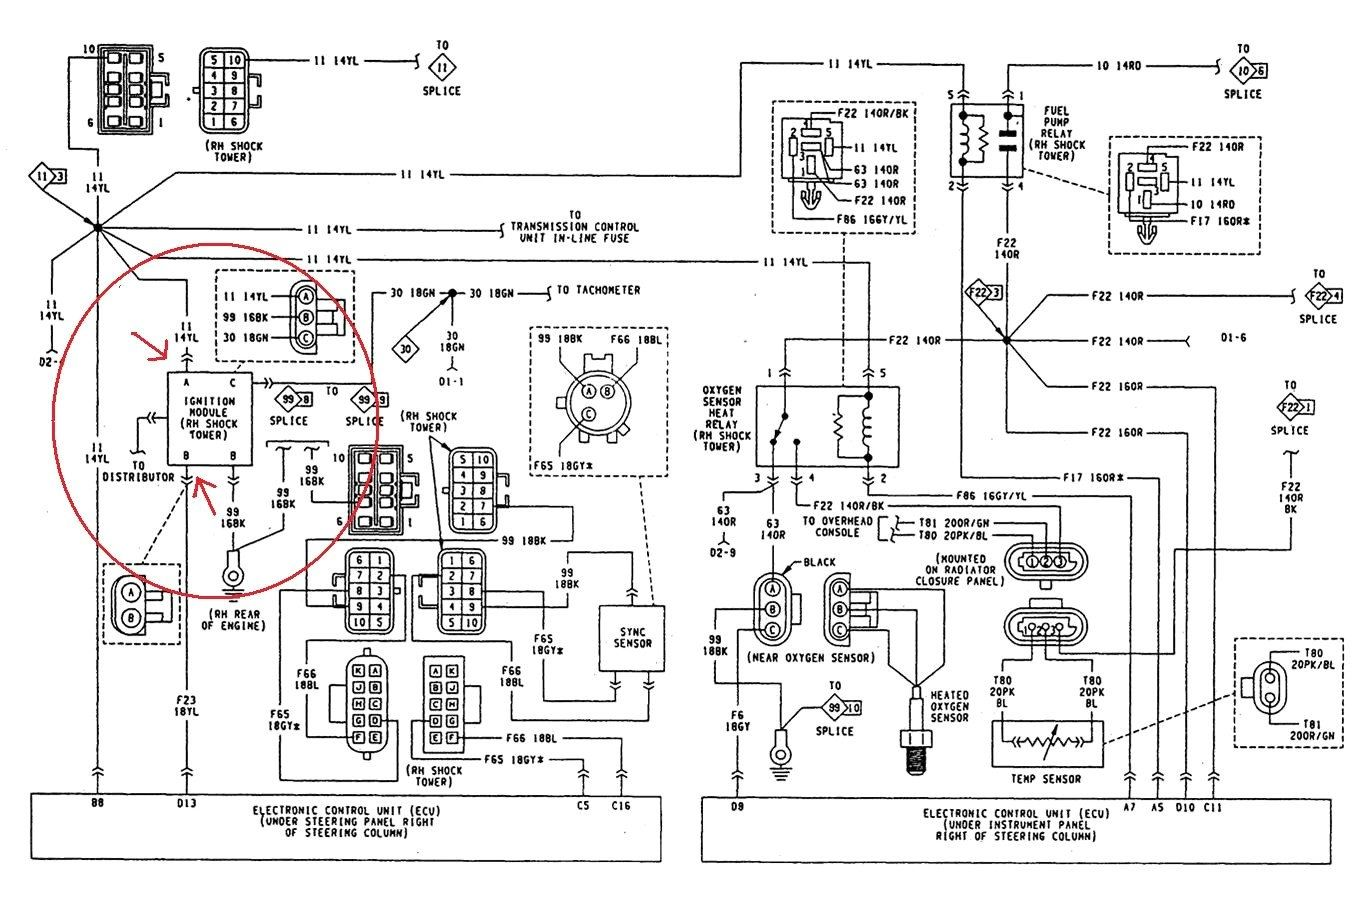 1990 Jeep Yj Vacuum Diagram 1990 Jeep Wrangler 4 2 Vacuum Diagram